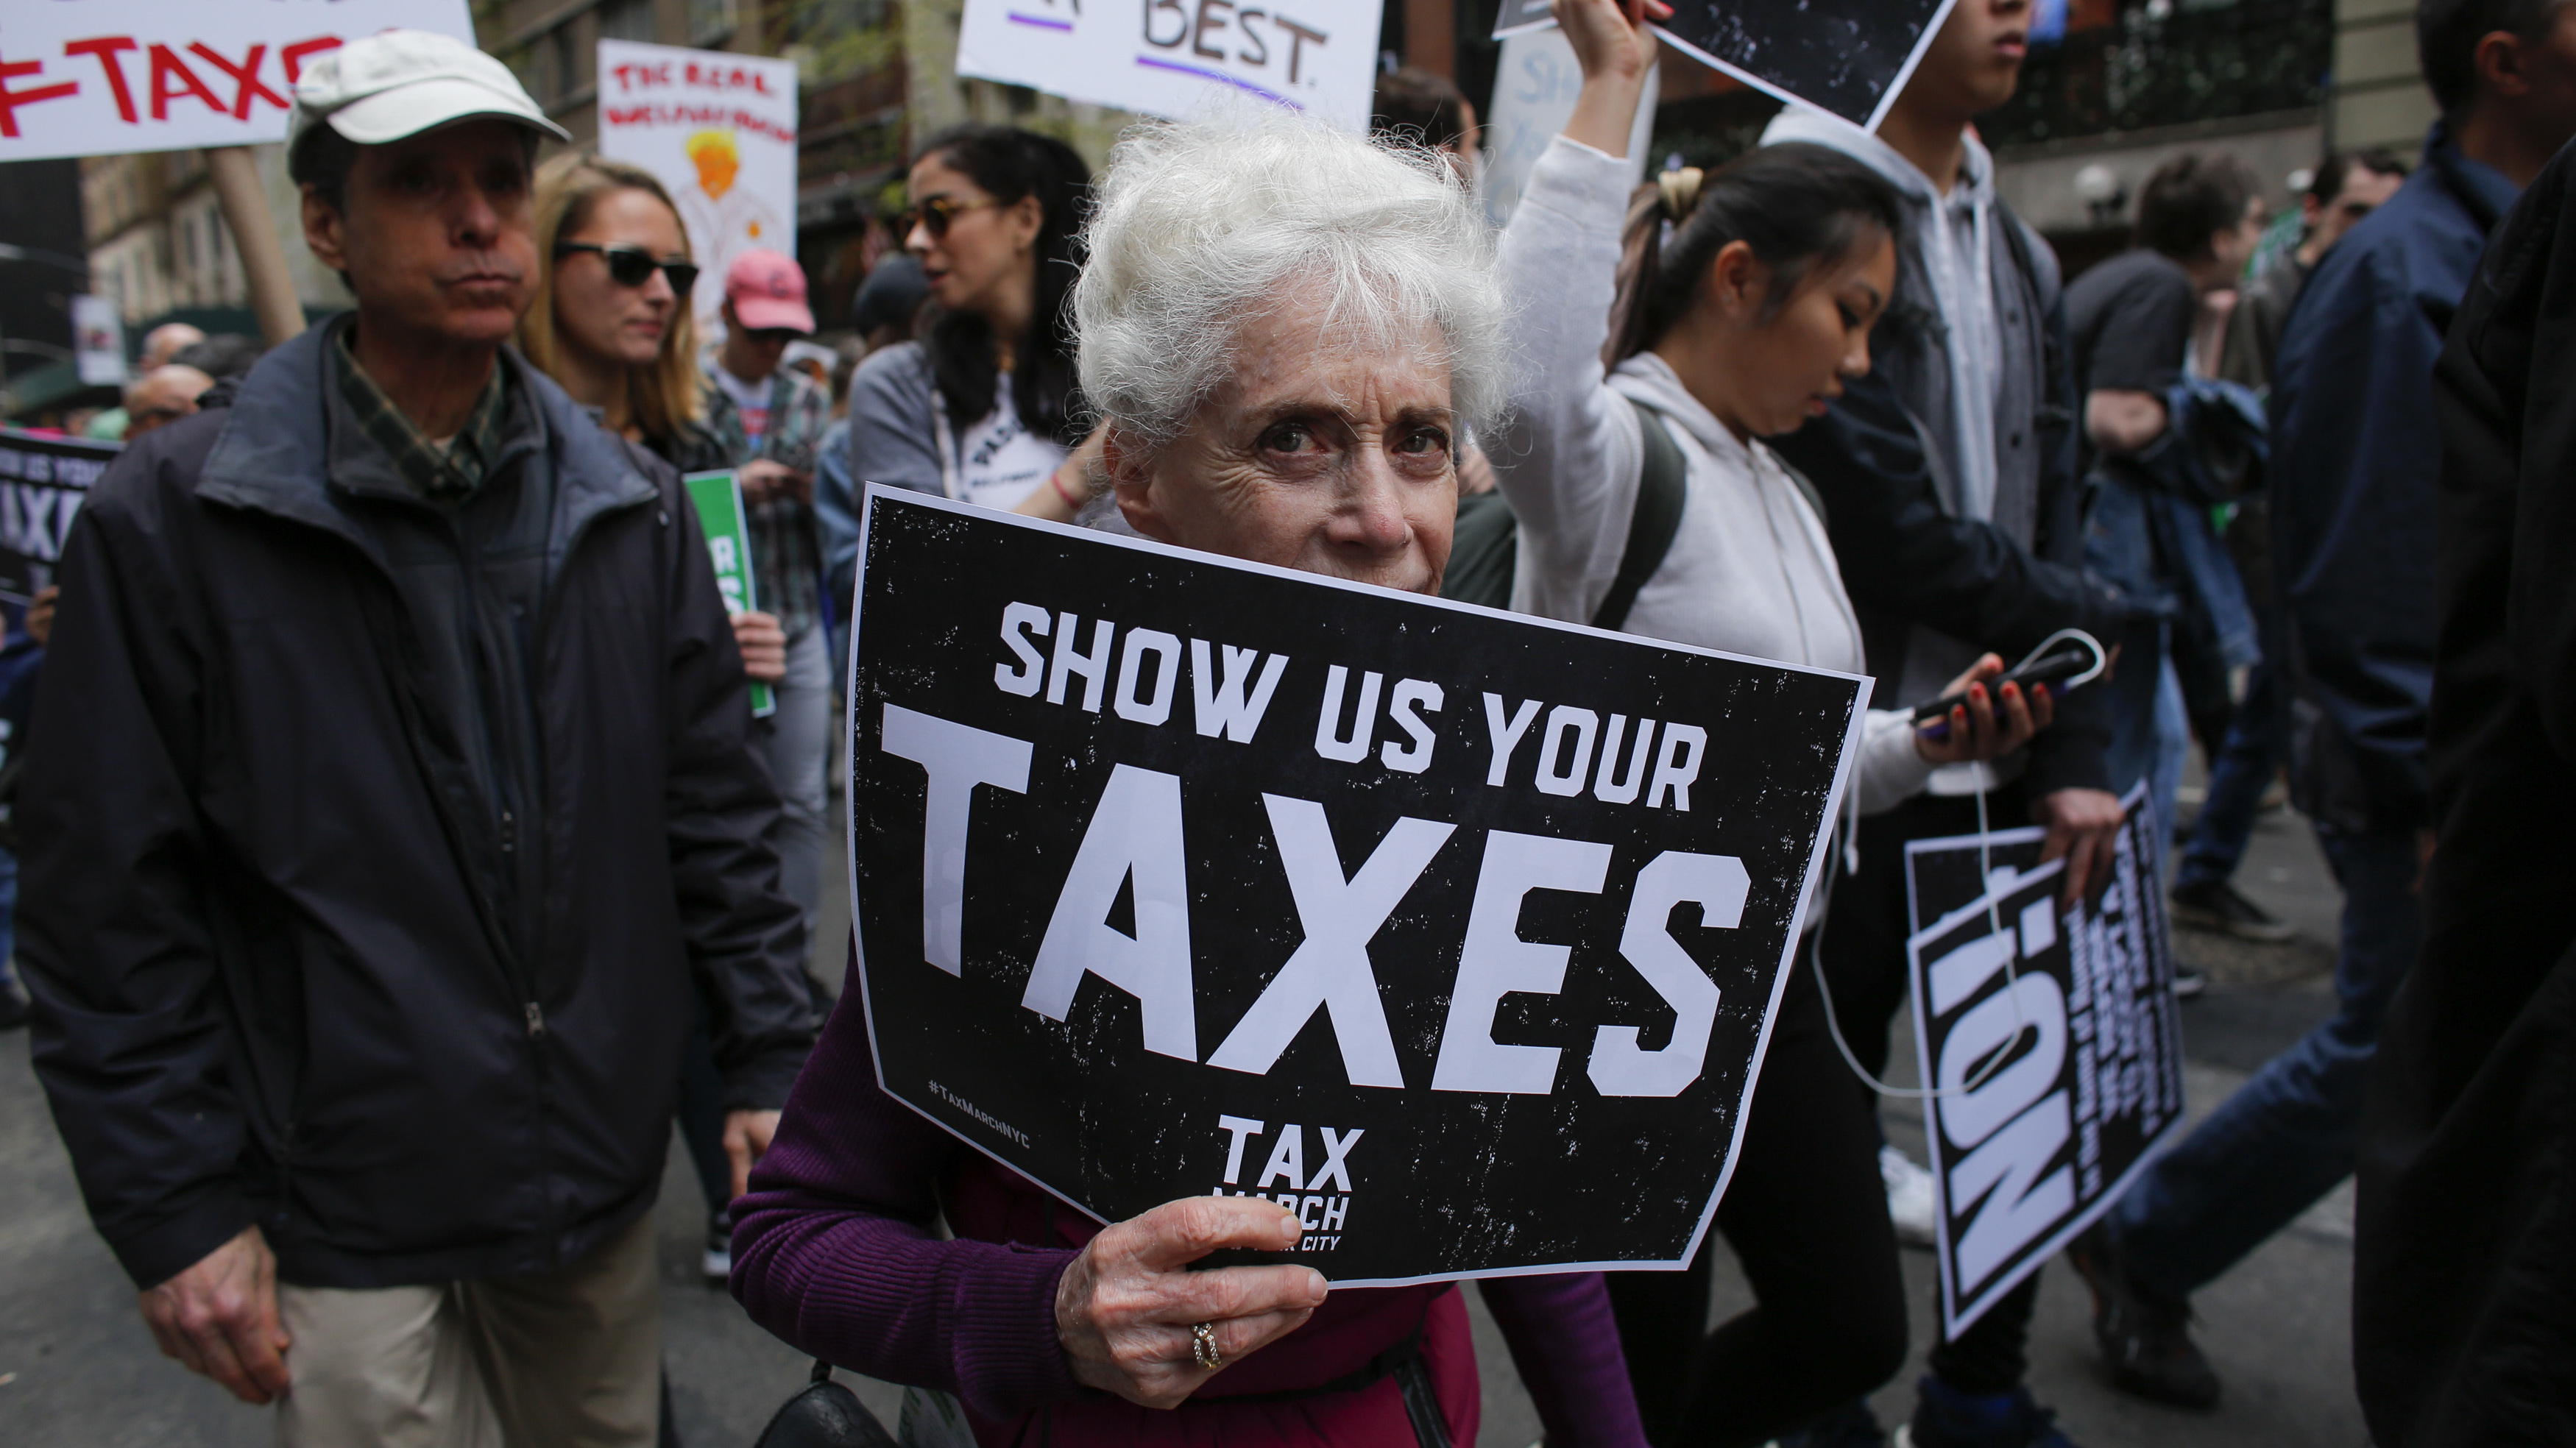 Protesters take part in the Tax March in New York on April 15 calling on President Trump to release his tax returns.